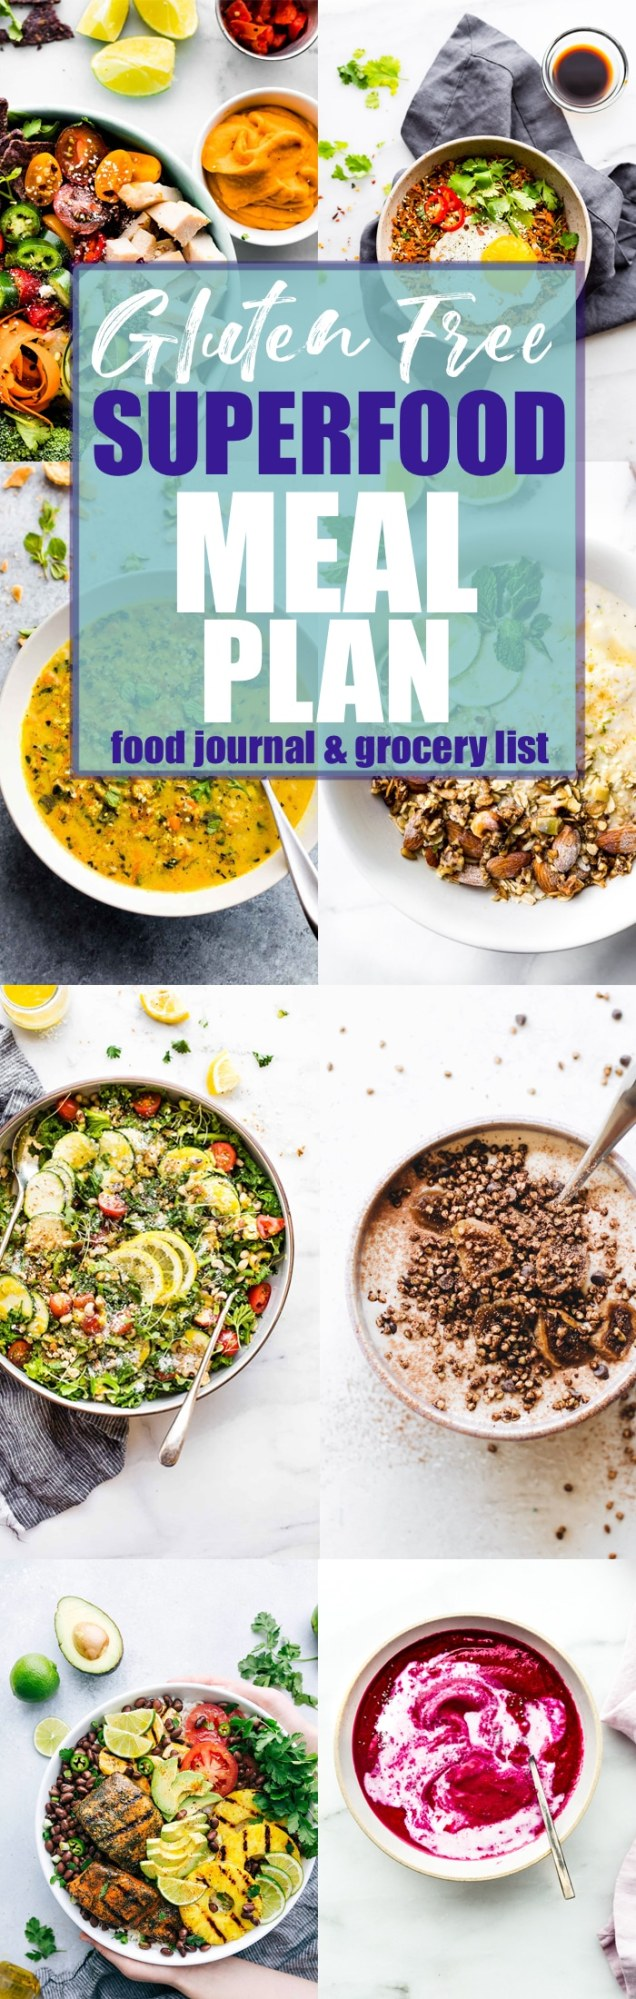 #Superfoods will become your body's best friend when you create and devour the delicious meals in this gluten free superfood meal plan! #mealplan #glutenfree